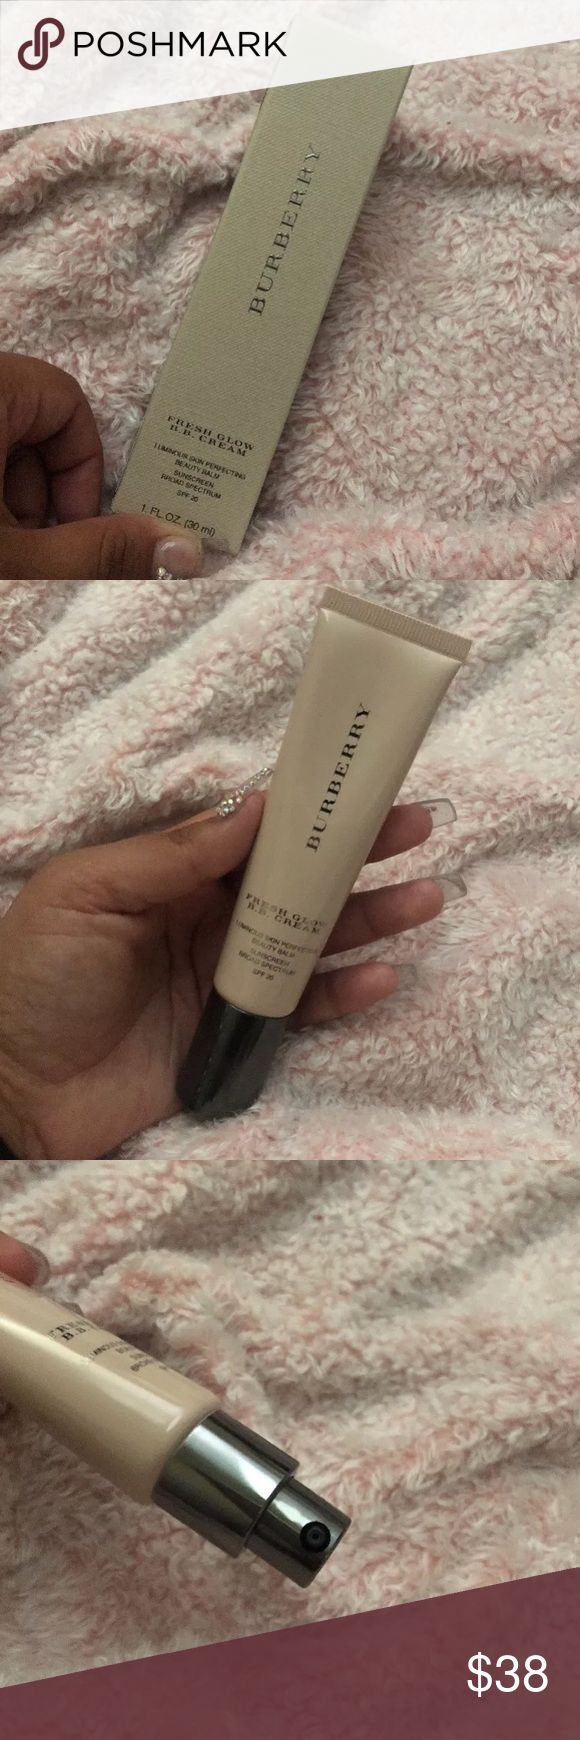 Burberry Fresh Glow BB Cream (Medium) BNIB  Authentic  Minor damage on box  Color: medium 02   A multifunctional B.B. Cream with Broad Spectrum SPF 20 that moisturizes, protects, perfects, and enhances the skin to create a healthy-looking, dewy glow. Burberry Makeup Foundation